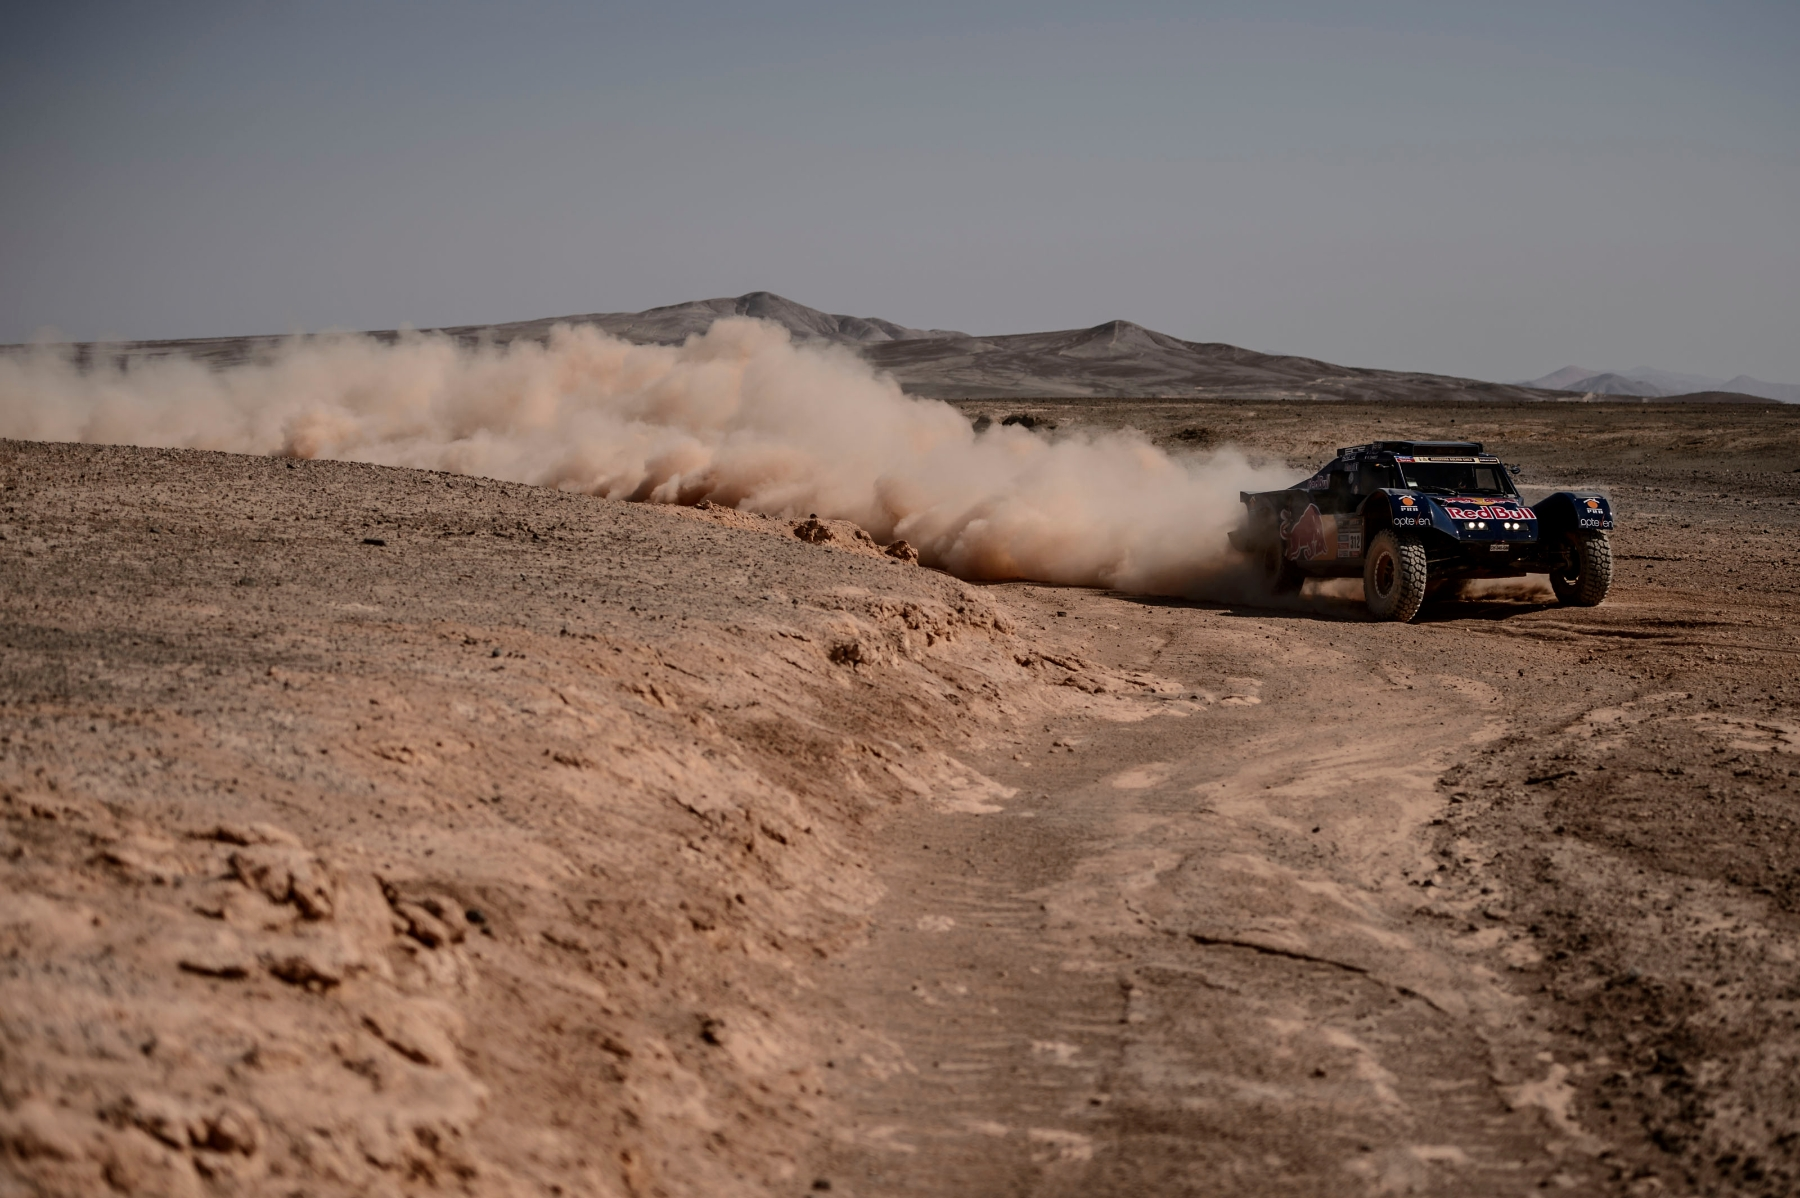 Ronan Chabot (driver) and Gilles Pillot (co-driver) race during the 11th stage of Dakar Rally from Antofagasta to El Salvador, Chile on January 16th, 2014